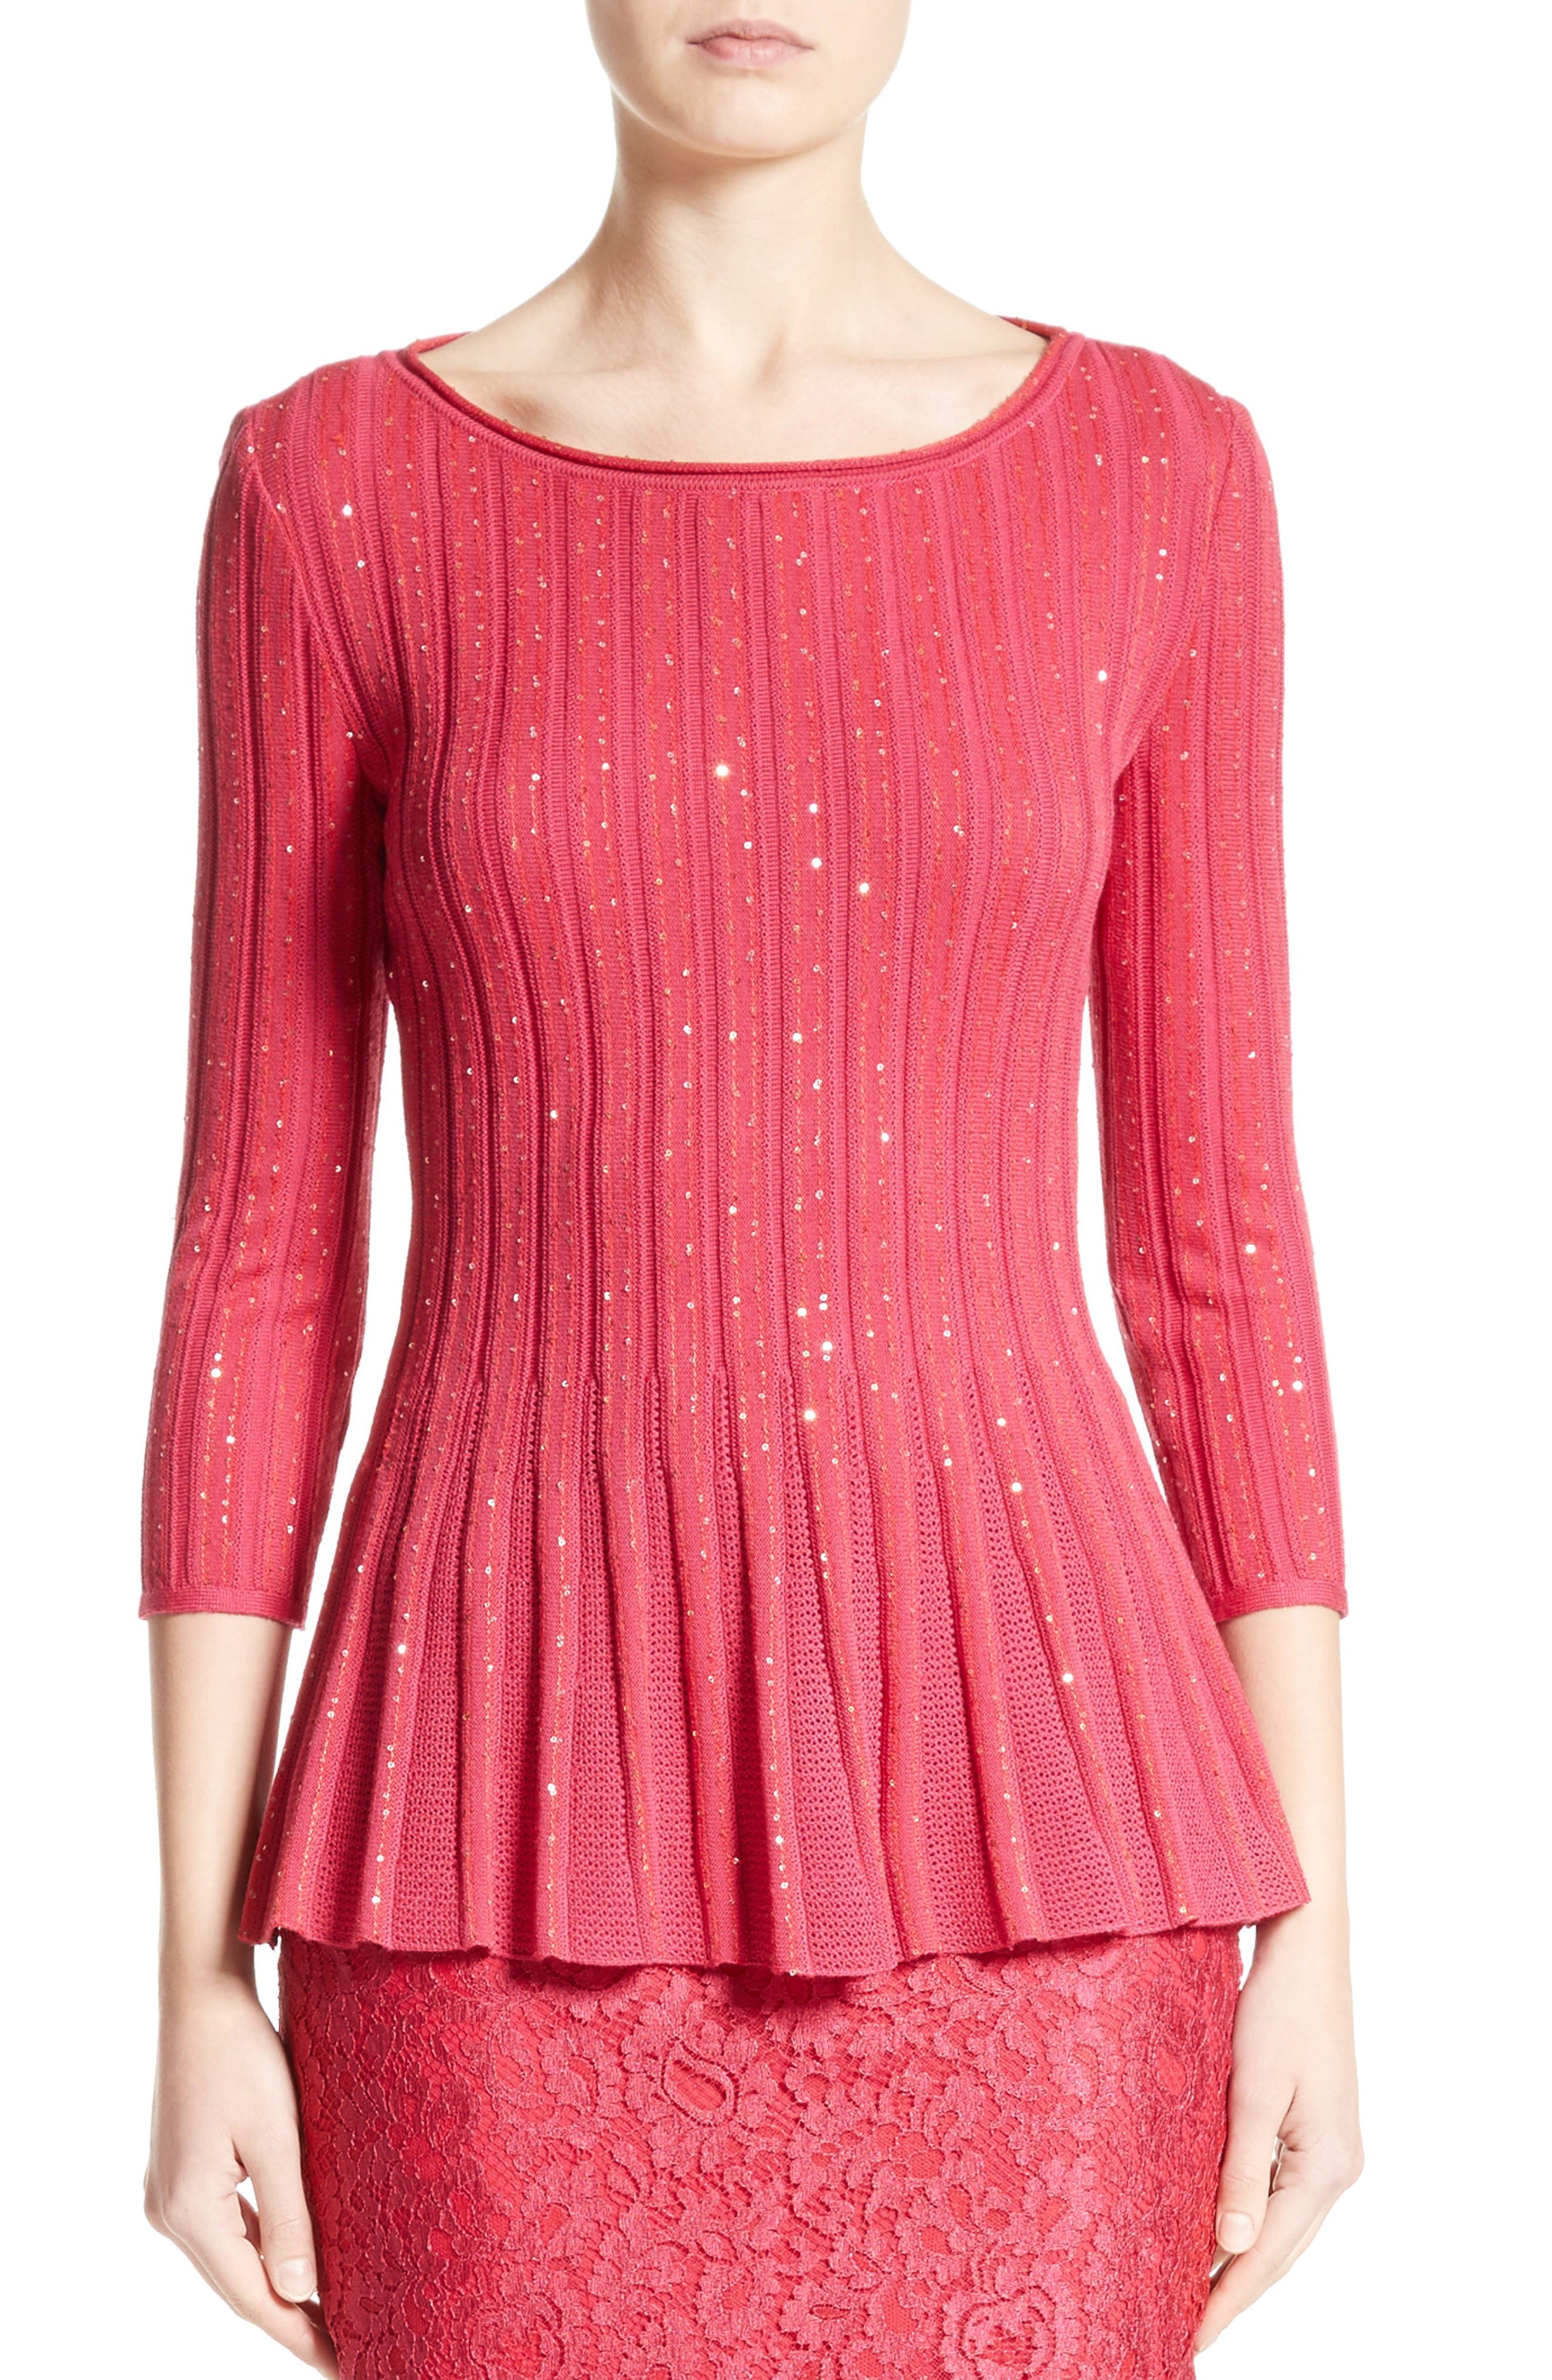 St. John Collection Chriag Sequin Knit Peplum Top